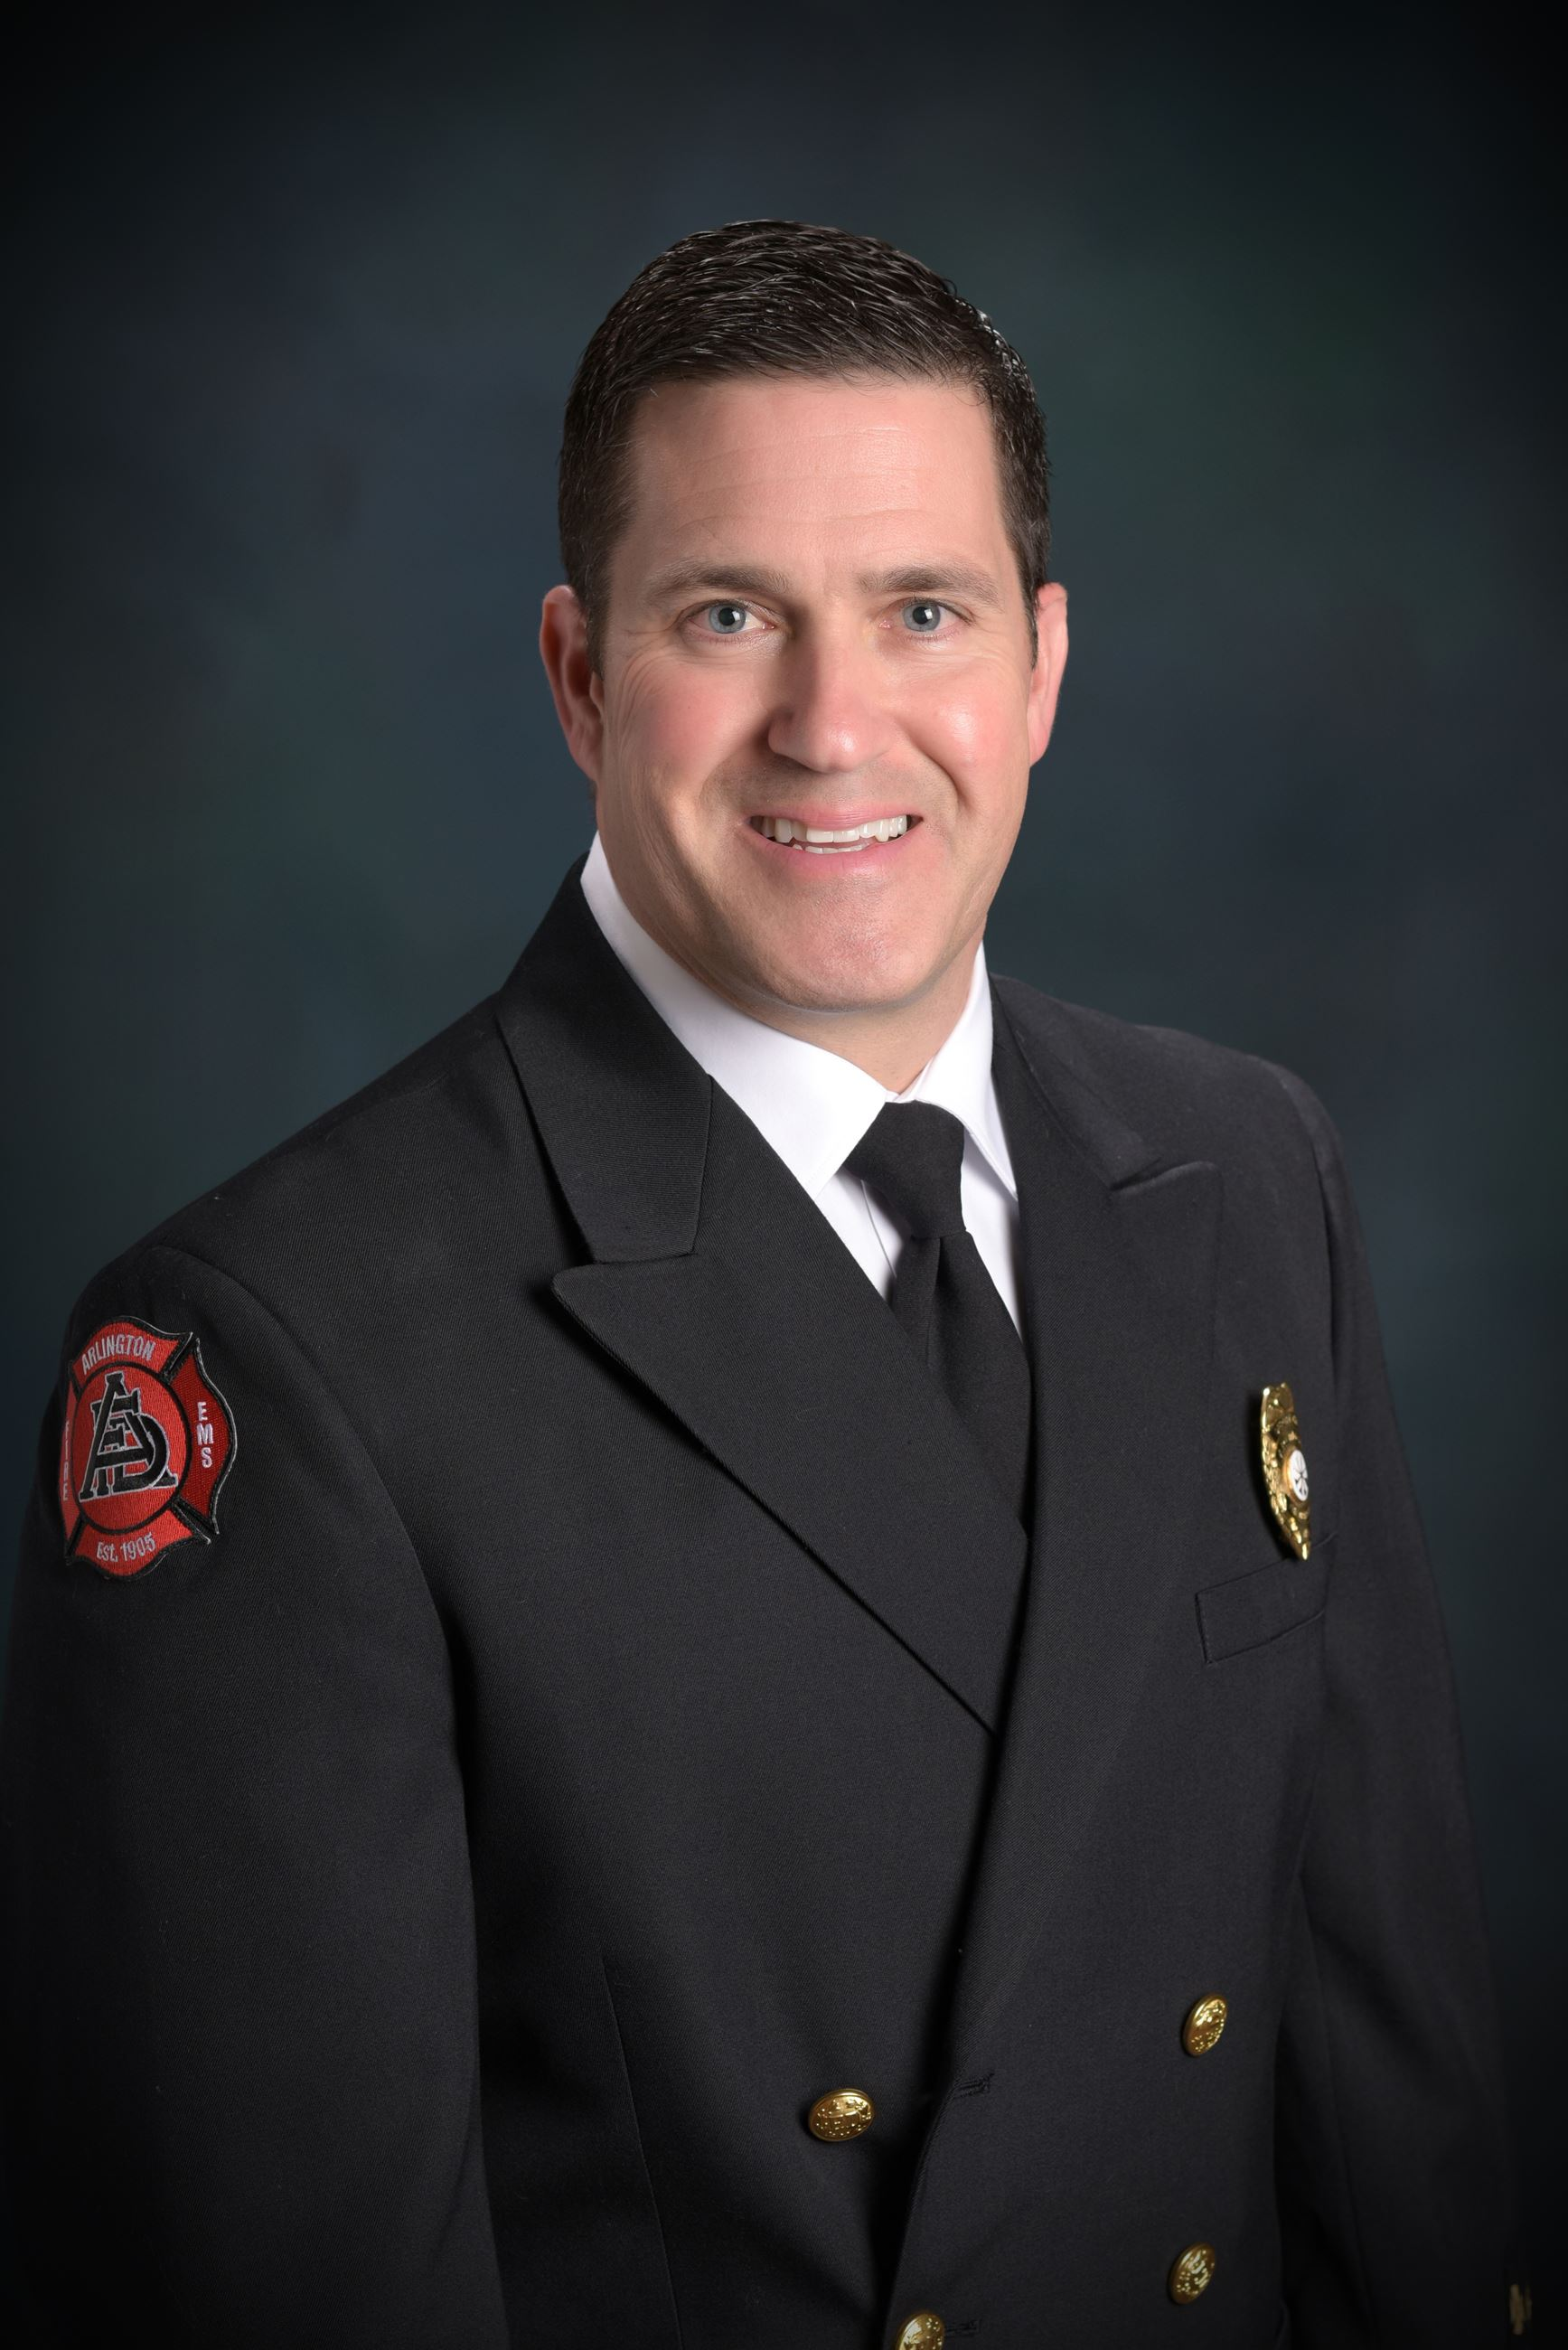 Dave Kraski - Deputy Fire Chief